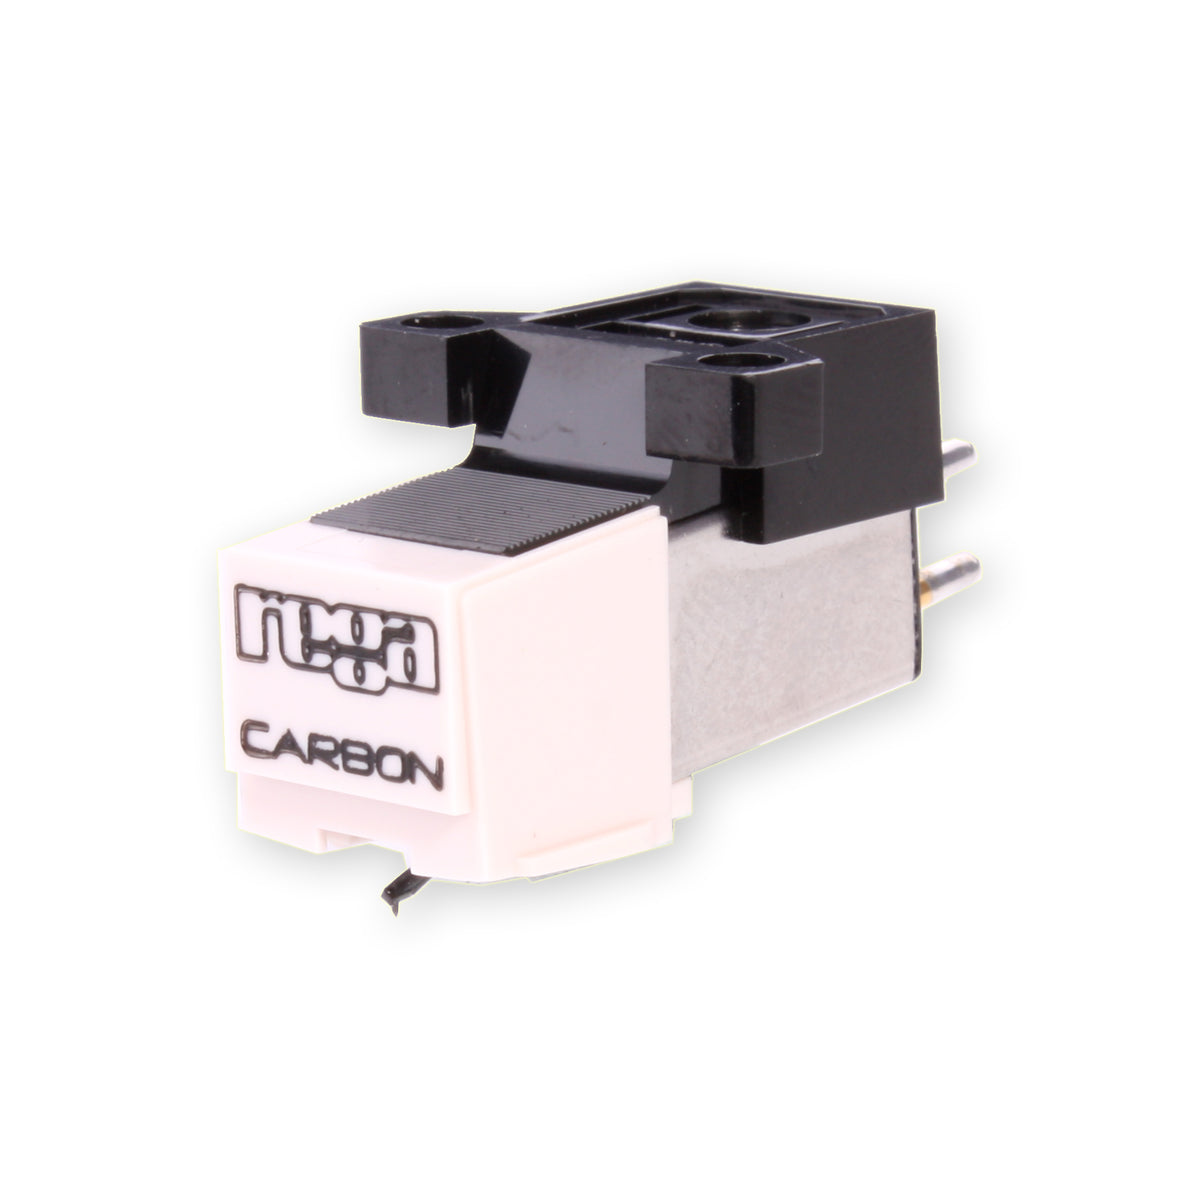 Rega Carbon MM Cartridge